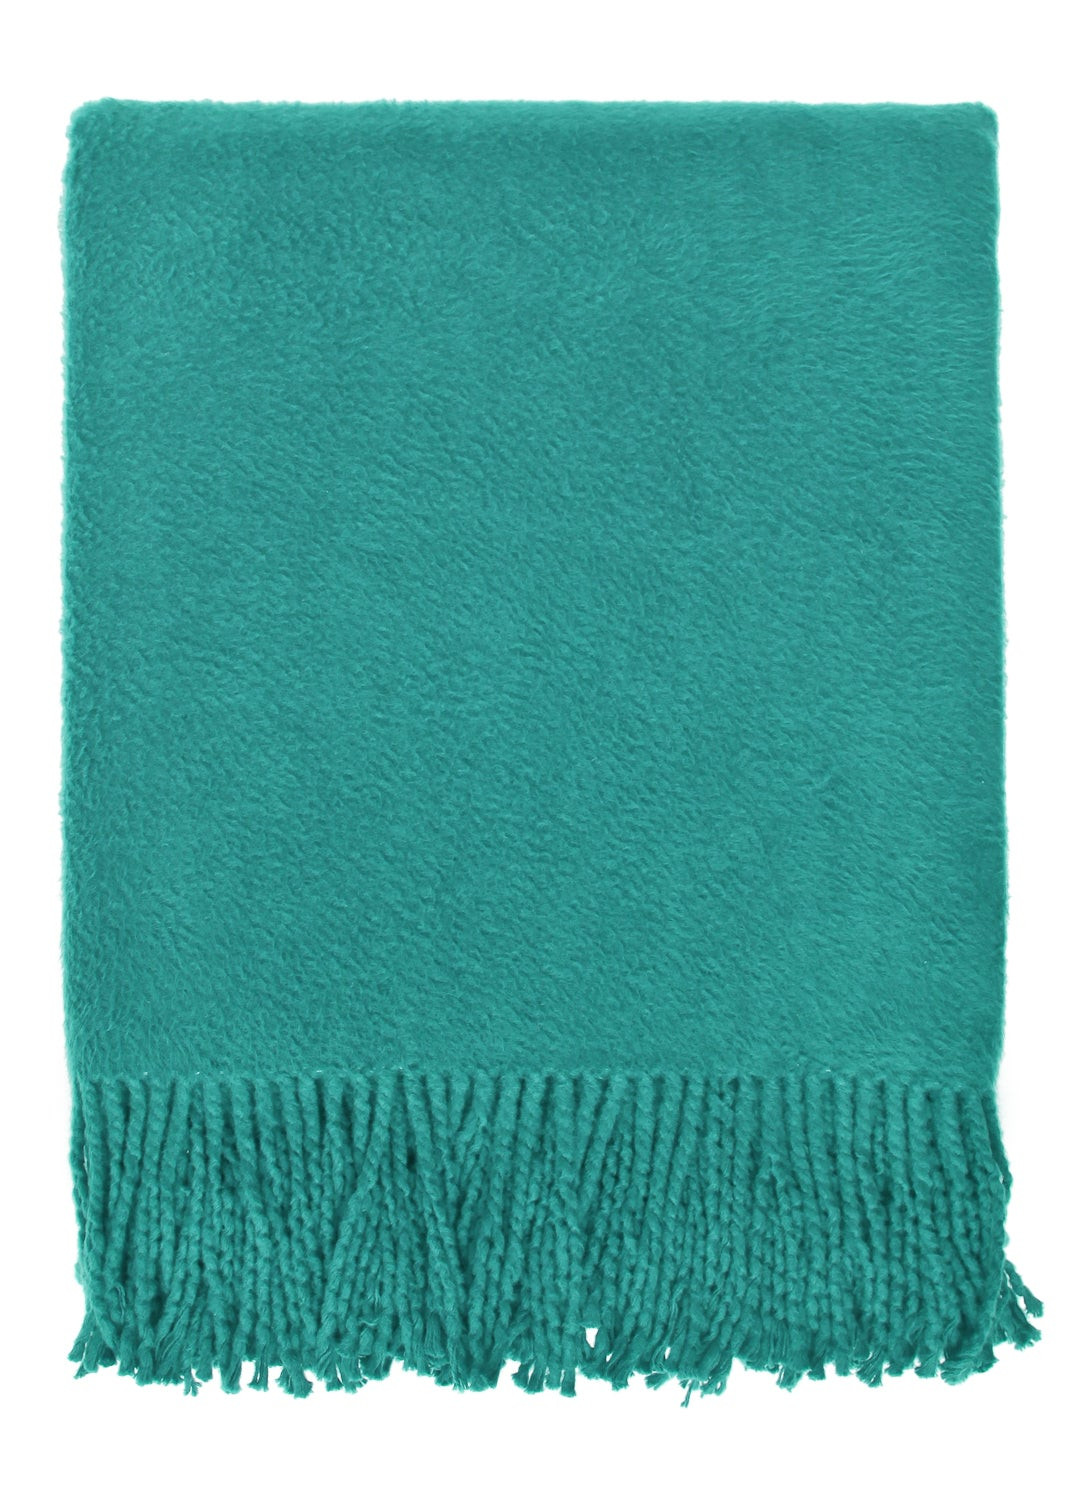 Brushed Organic Teal Cotton Throw